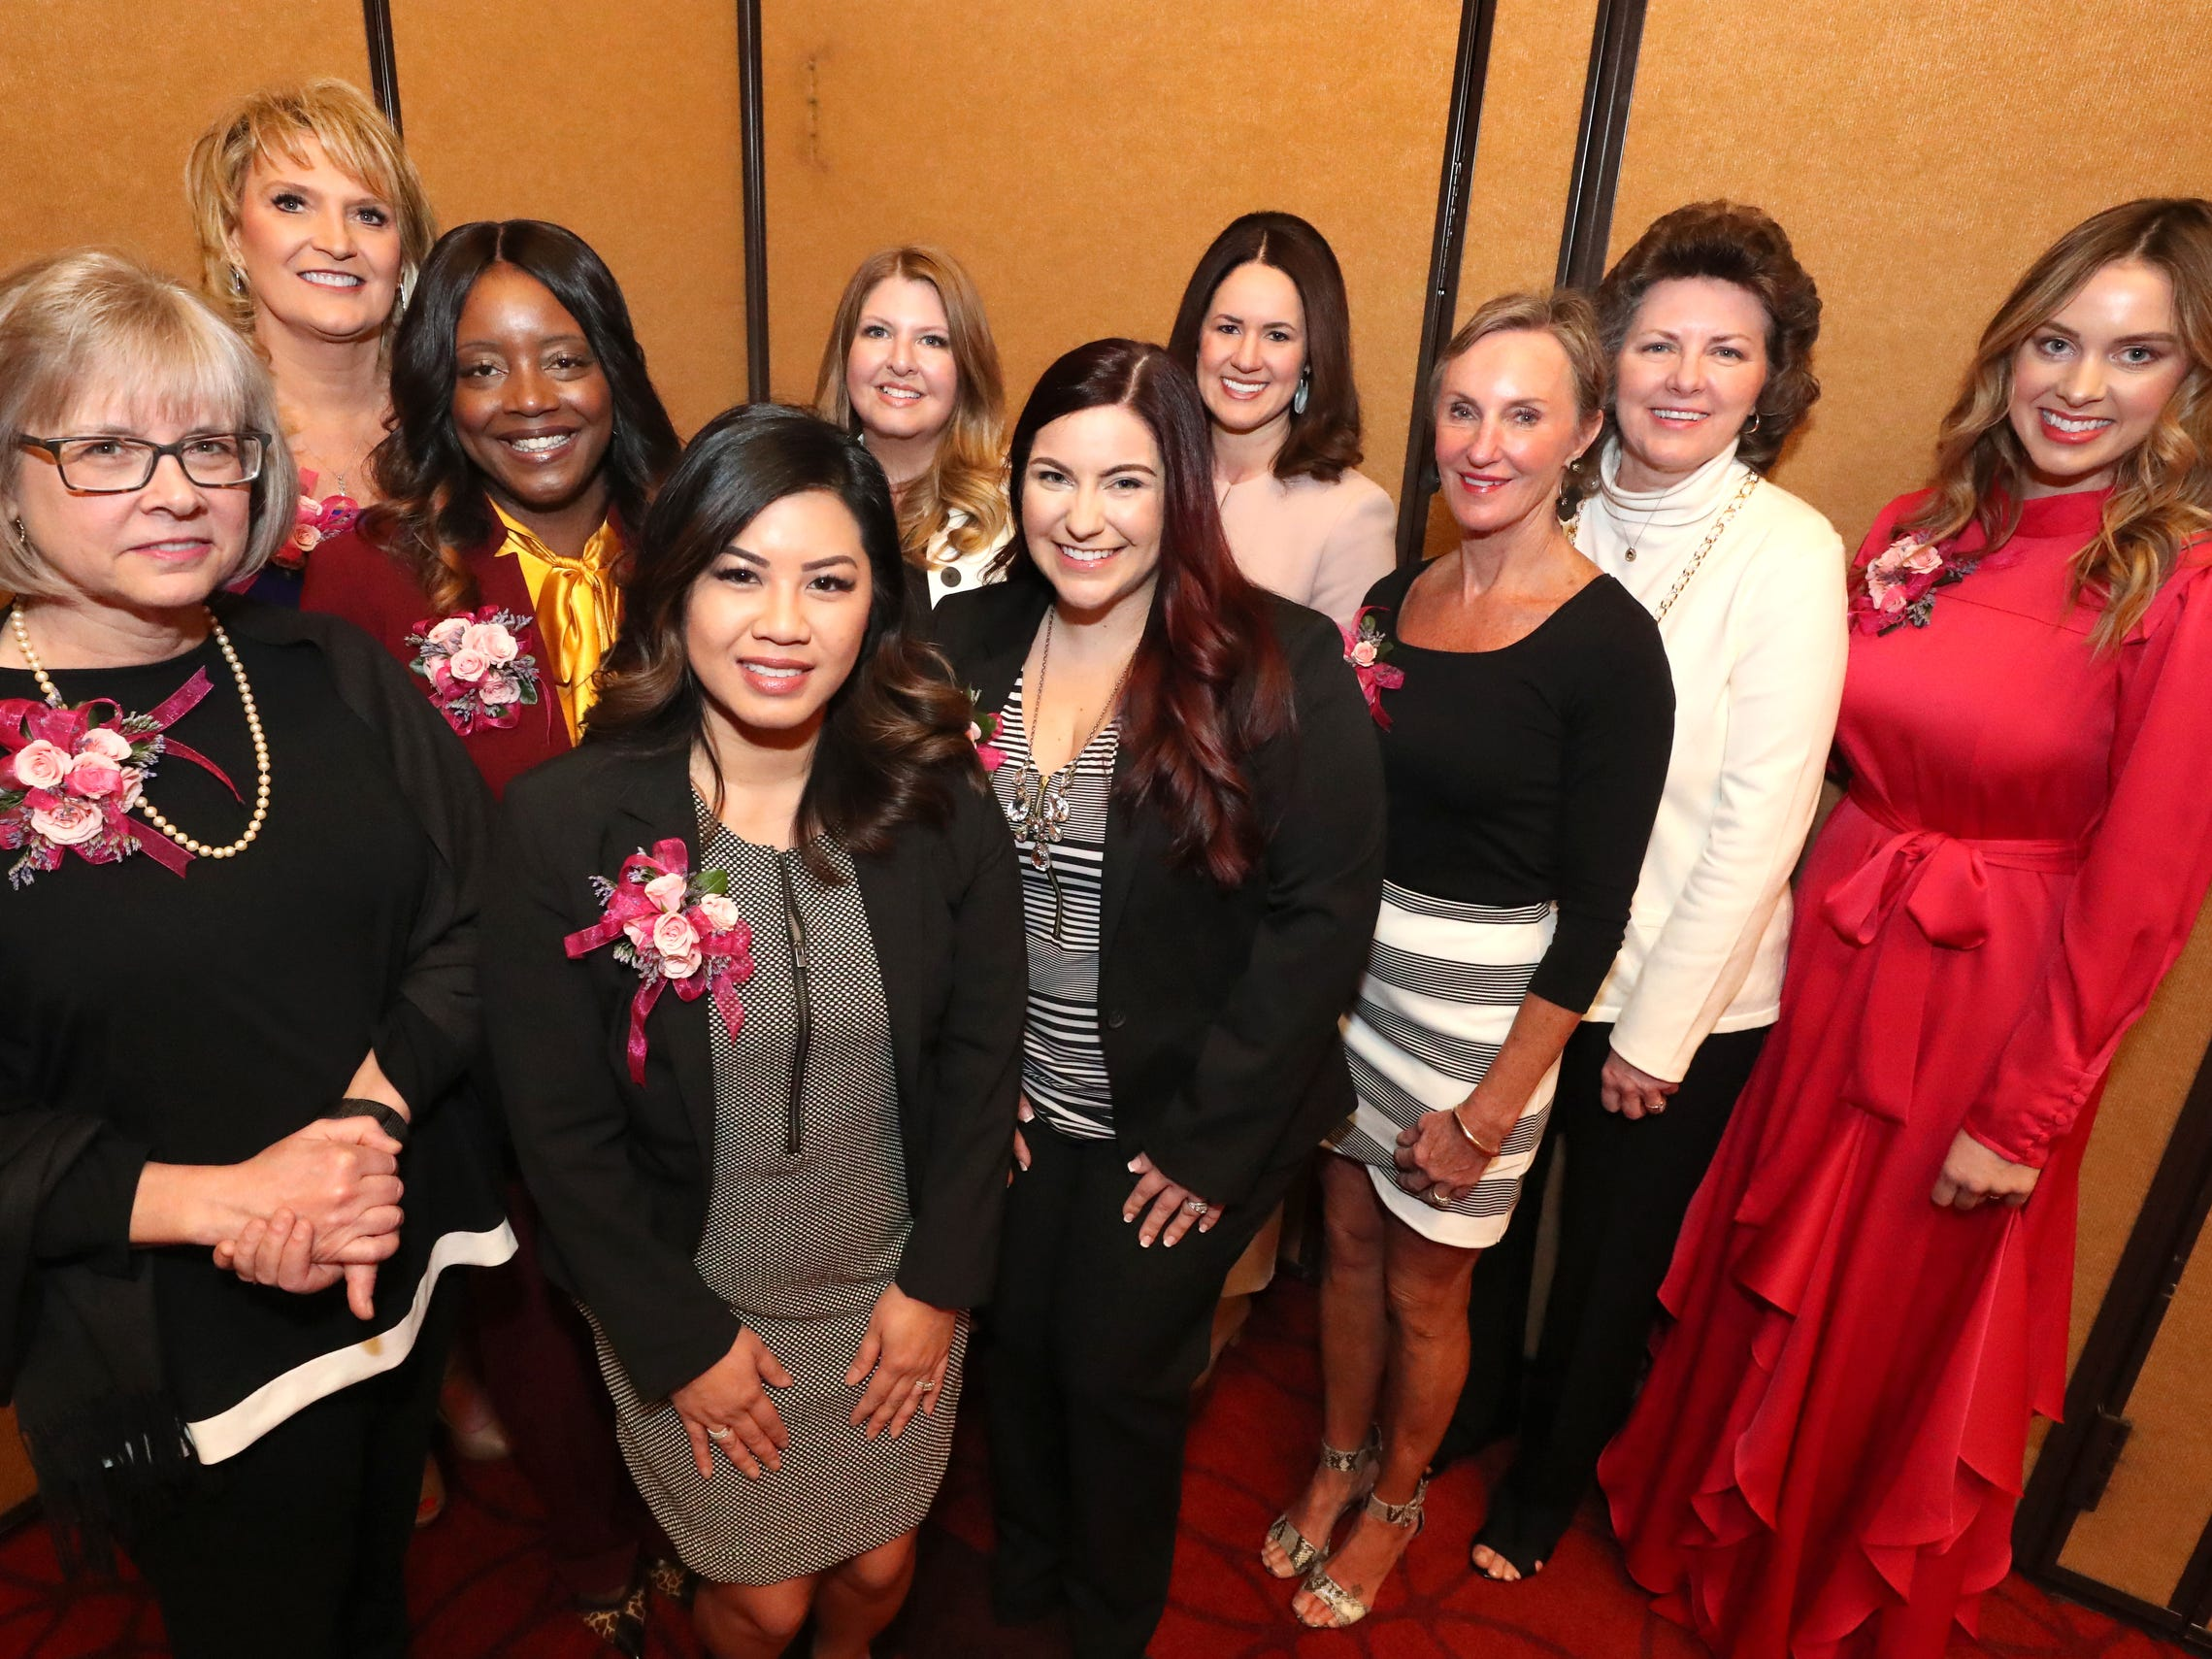 Ten women were recognized by Murfreesboro Magazine during the 2019 Women in Business Luncheon on Tuesday, March 12, 2019, at the Embassy Suites Murfreesboro